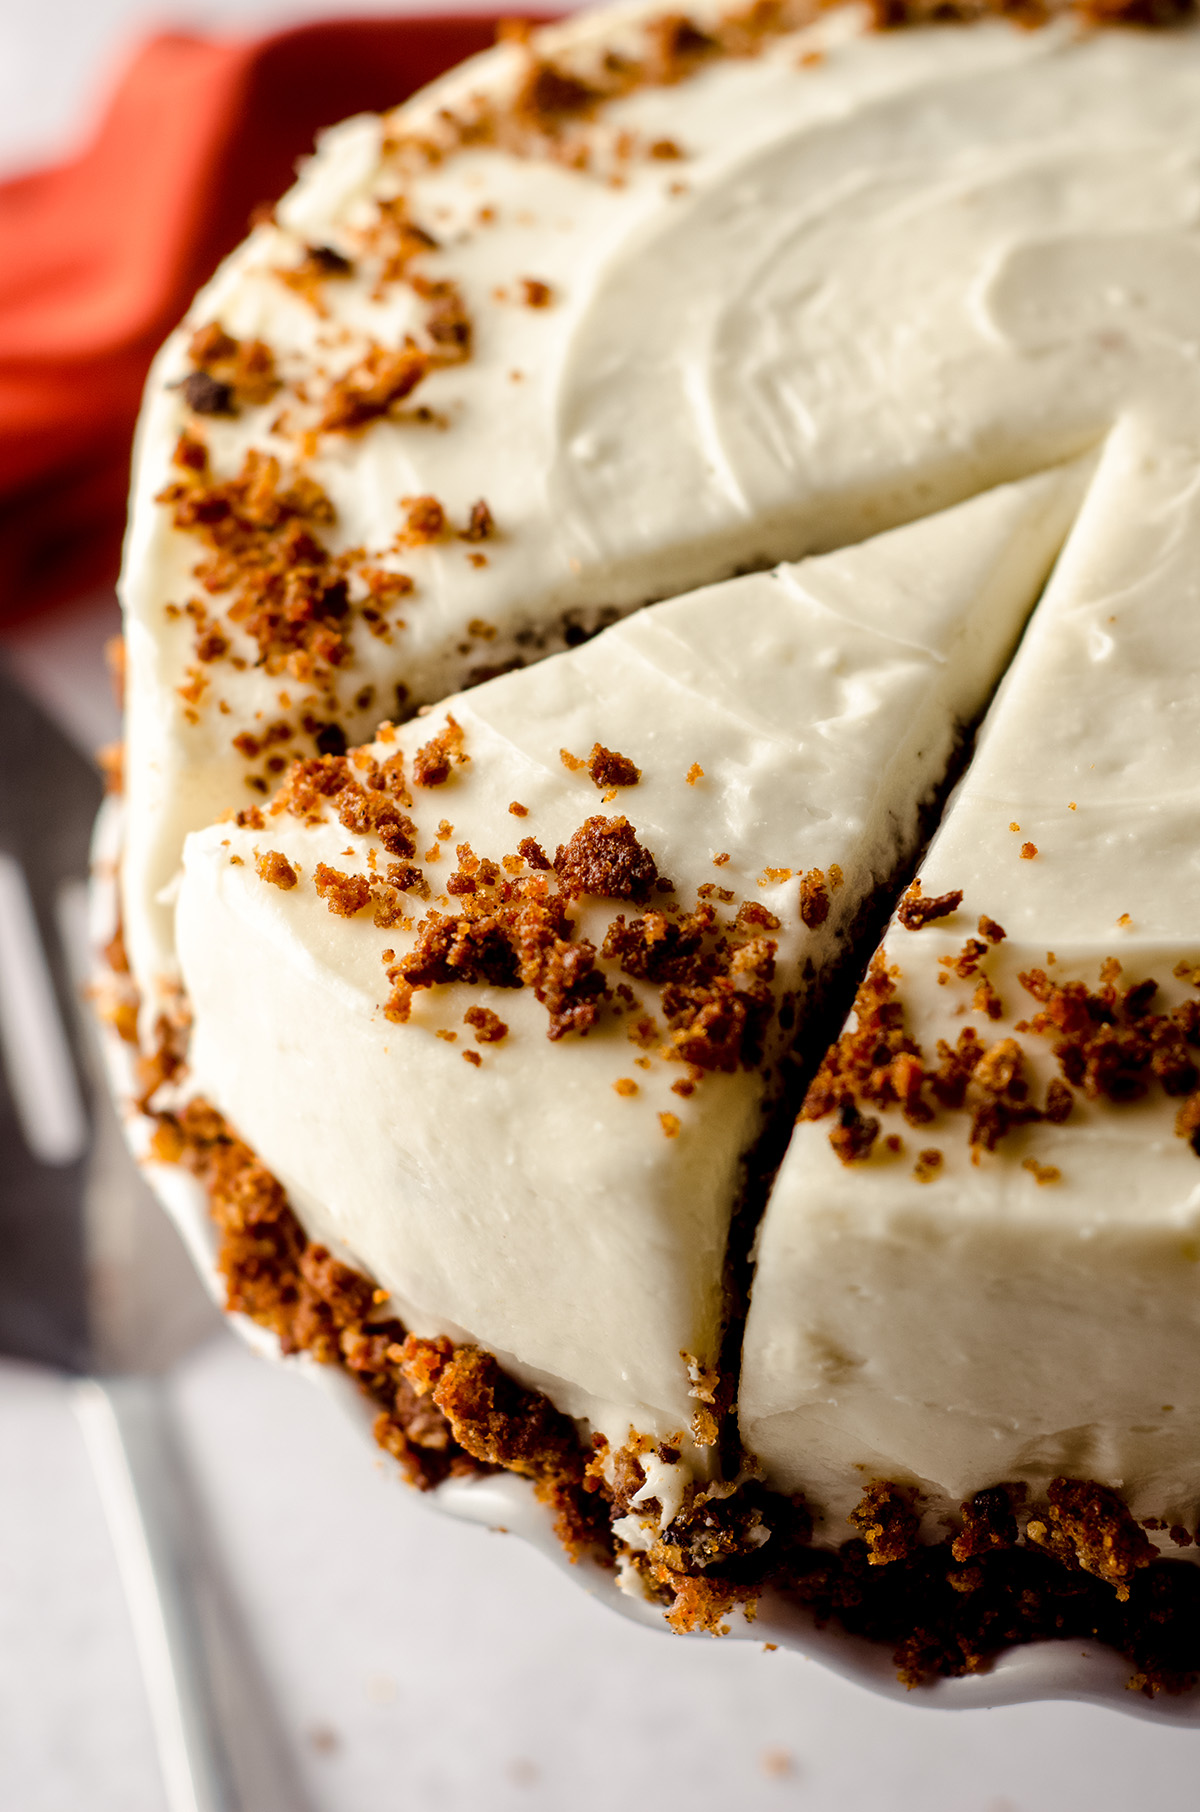 carrot walnut cake on a cake stand and cuts made for a slice to serve